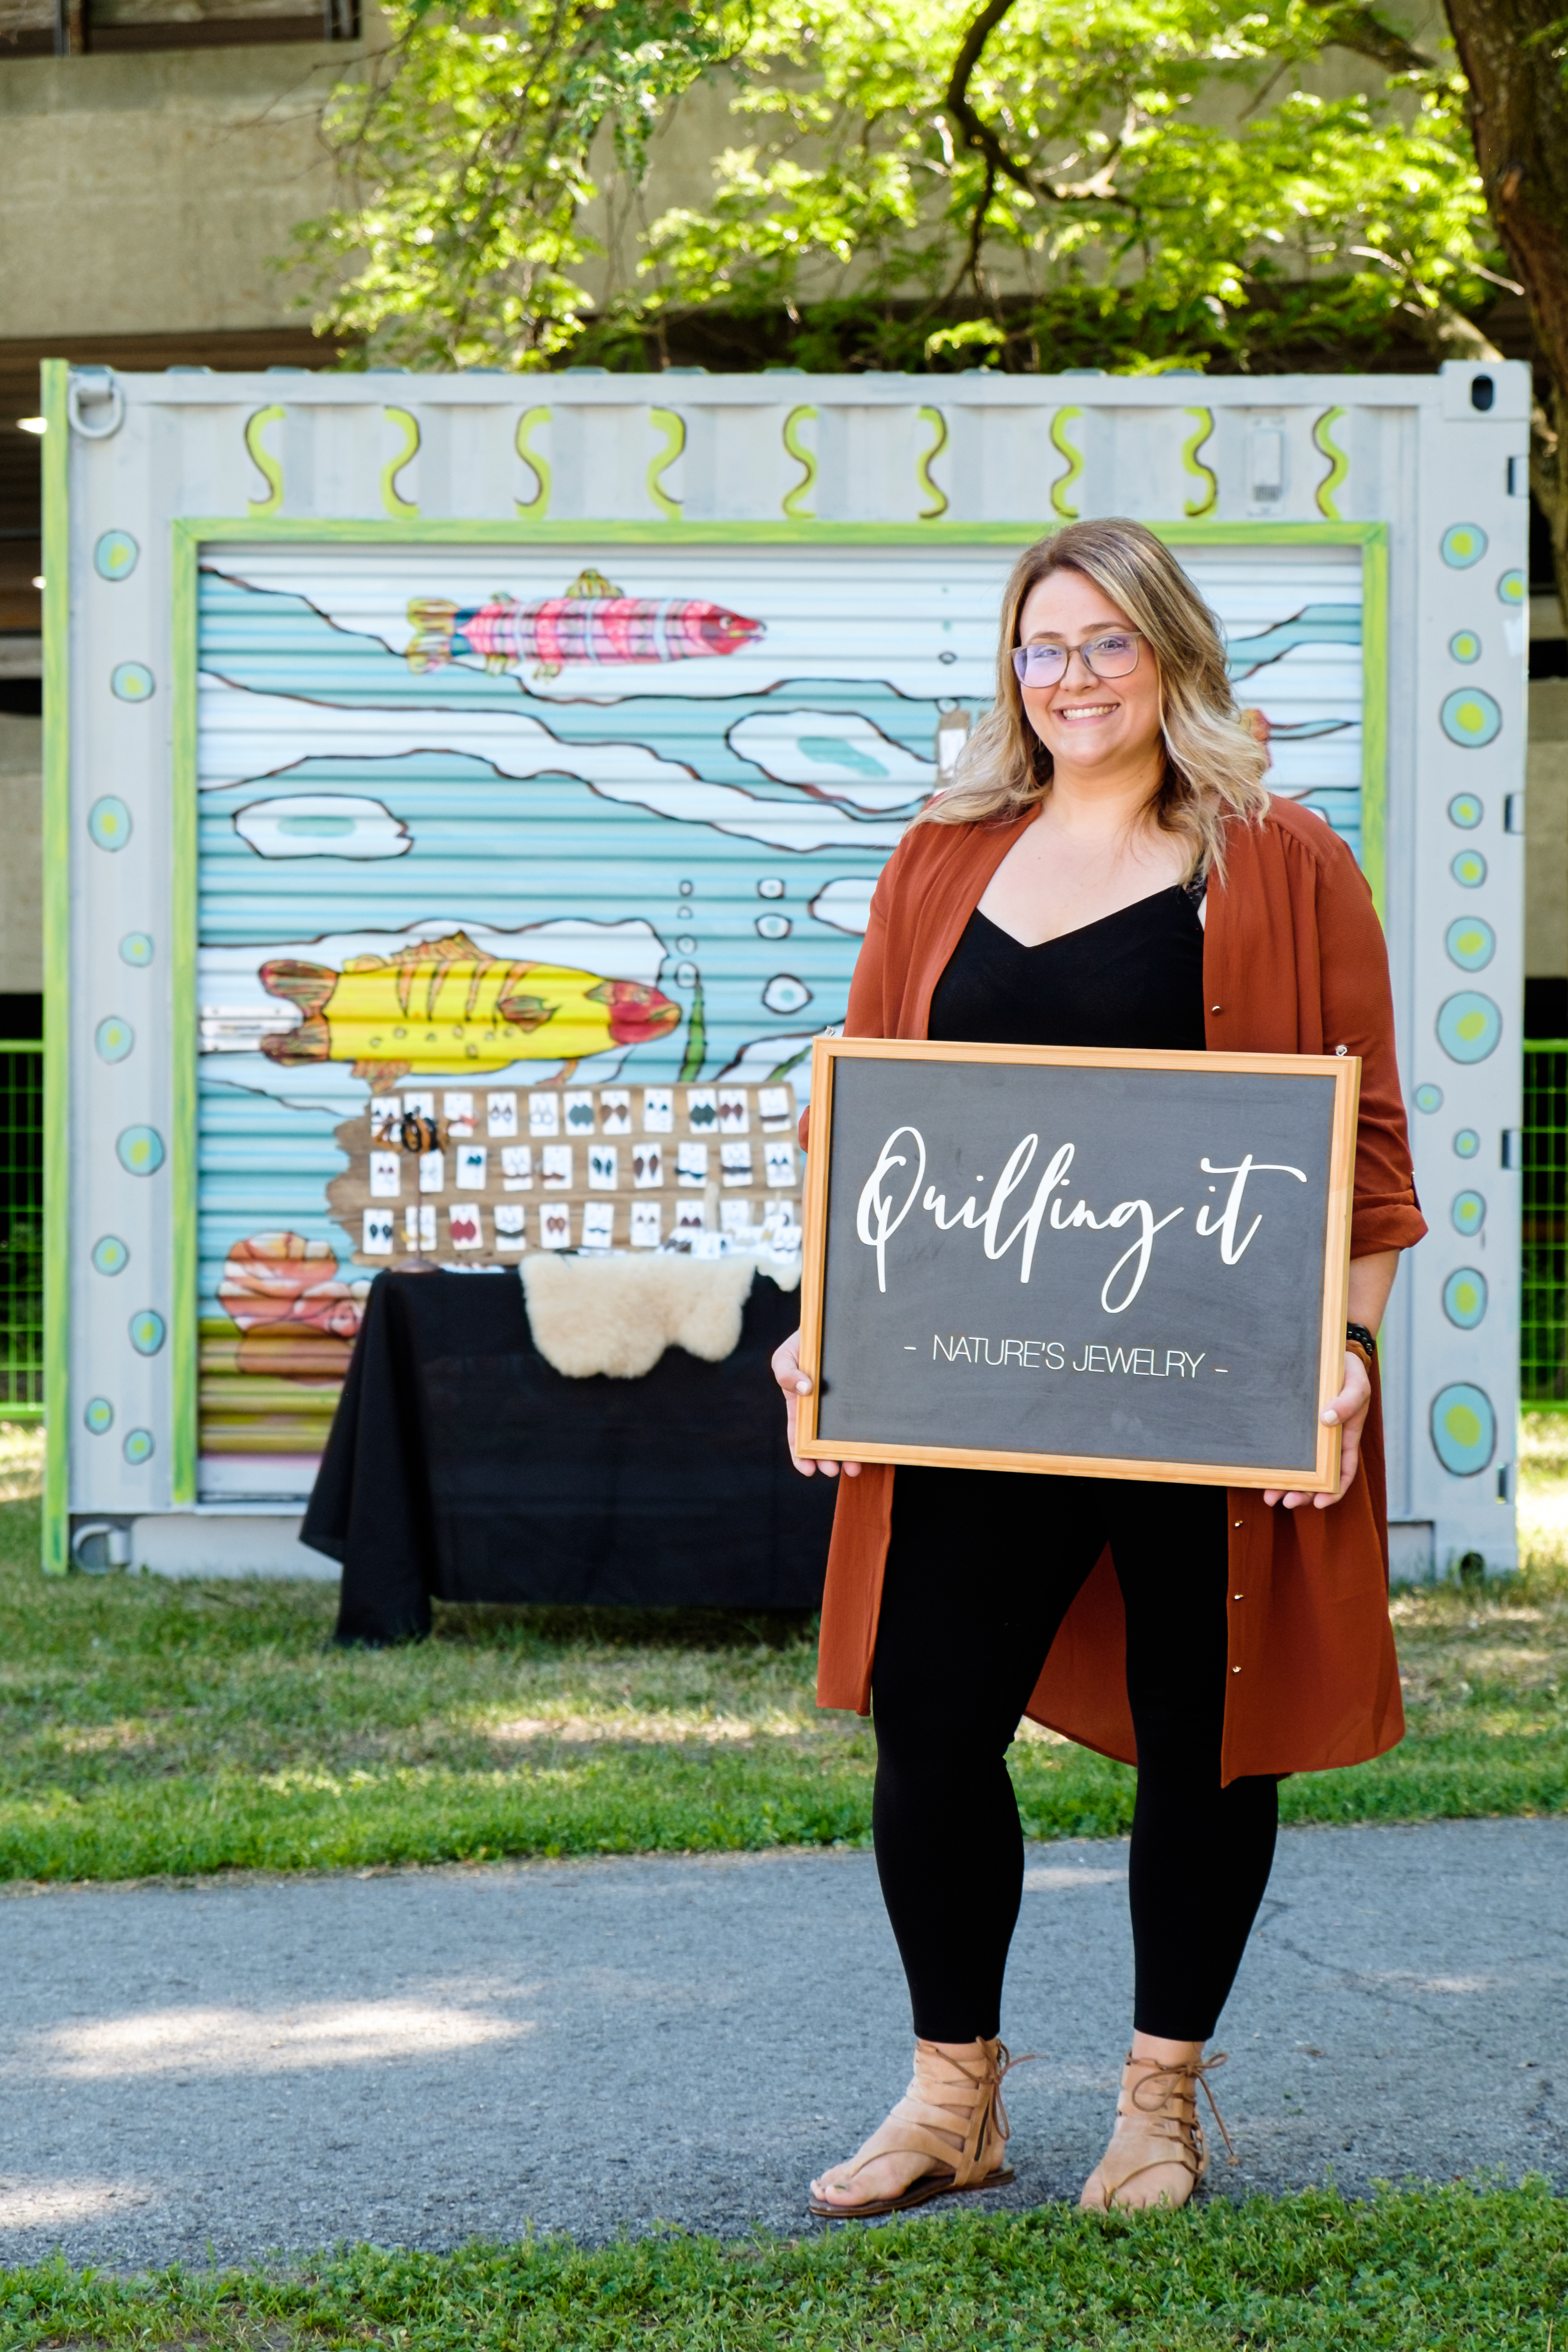 quilling it sign with owner at pop-up shop